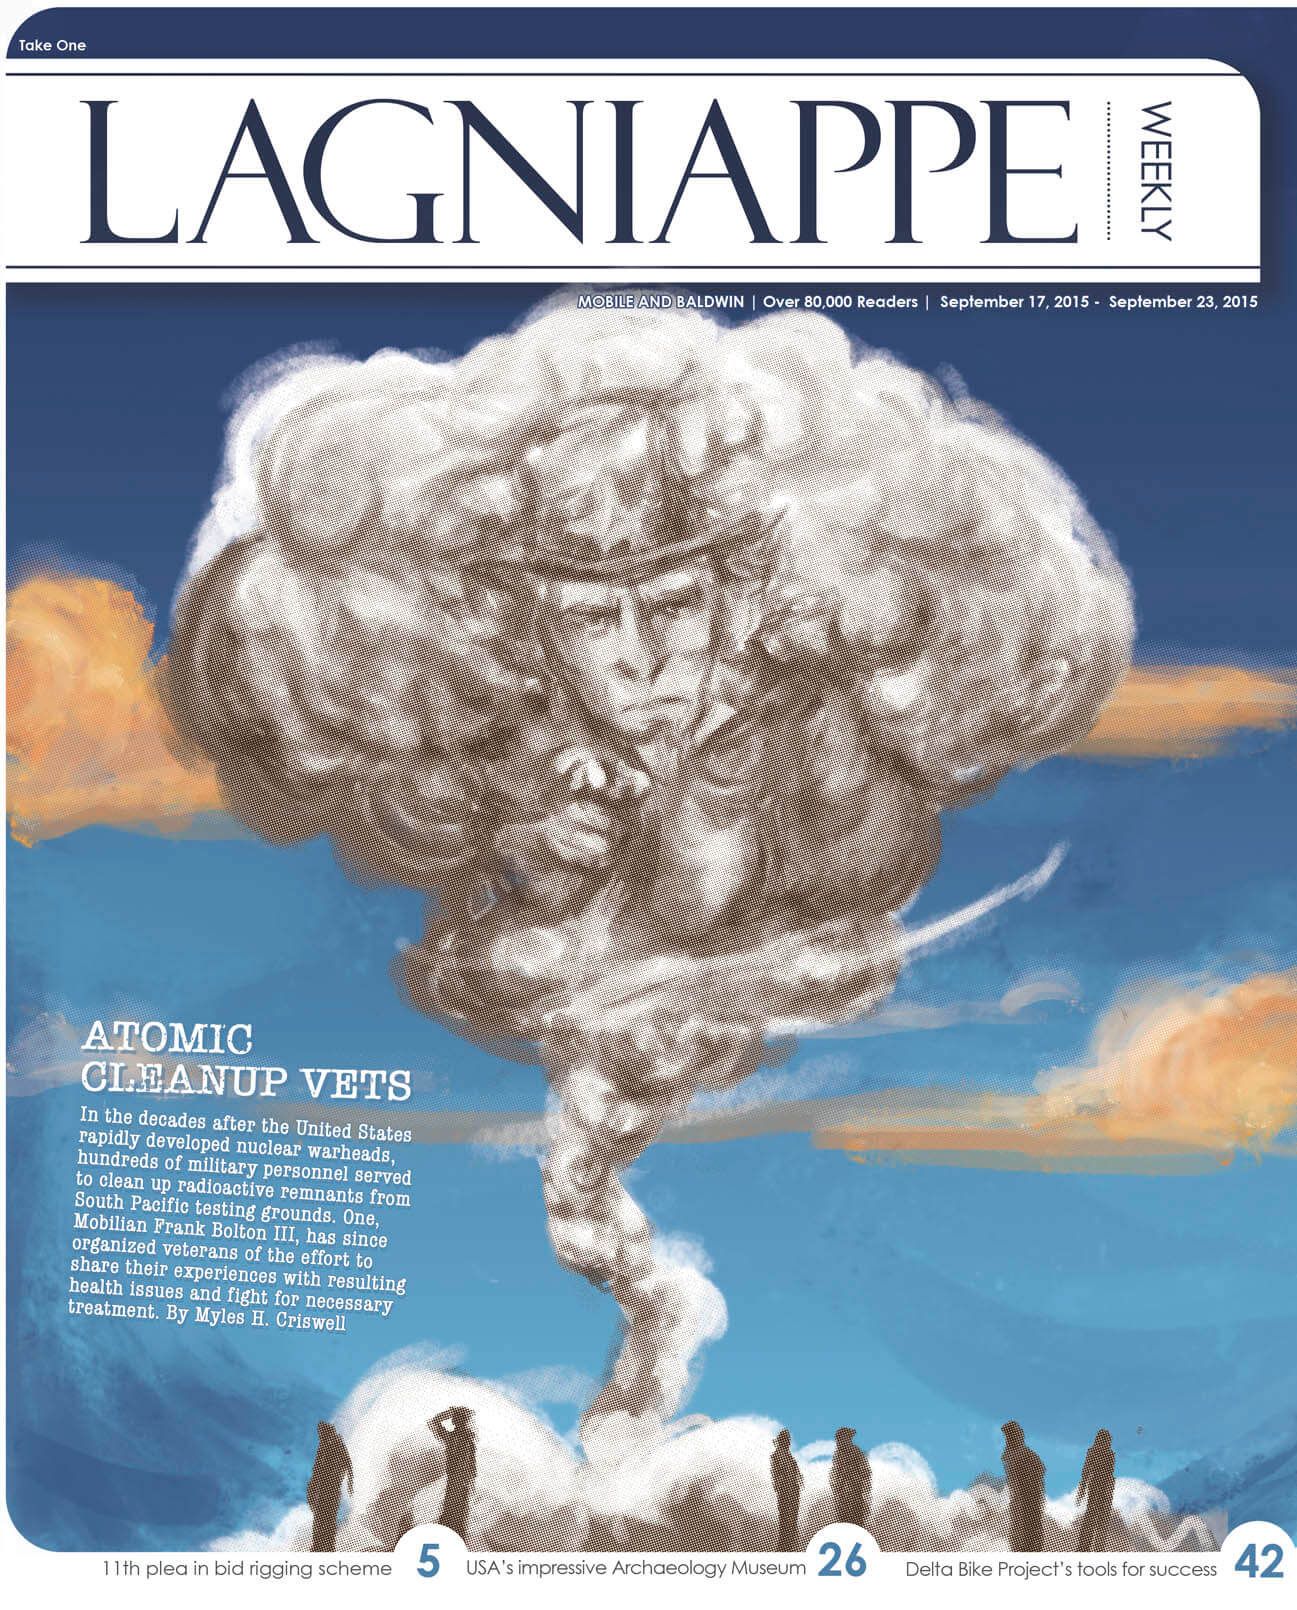 COVER STORY: Local veteran organizes service members affected by nuclear cleanup